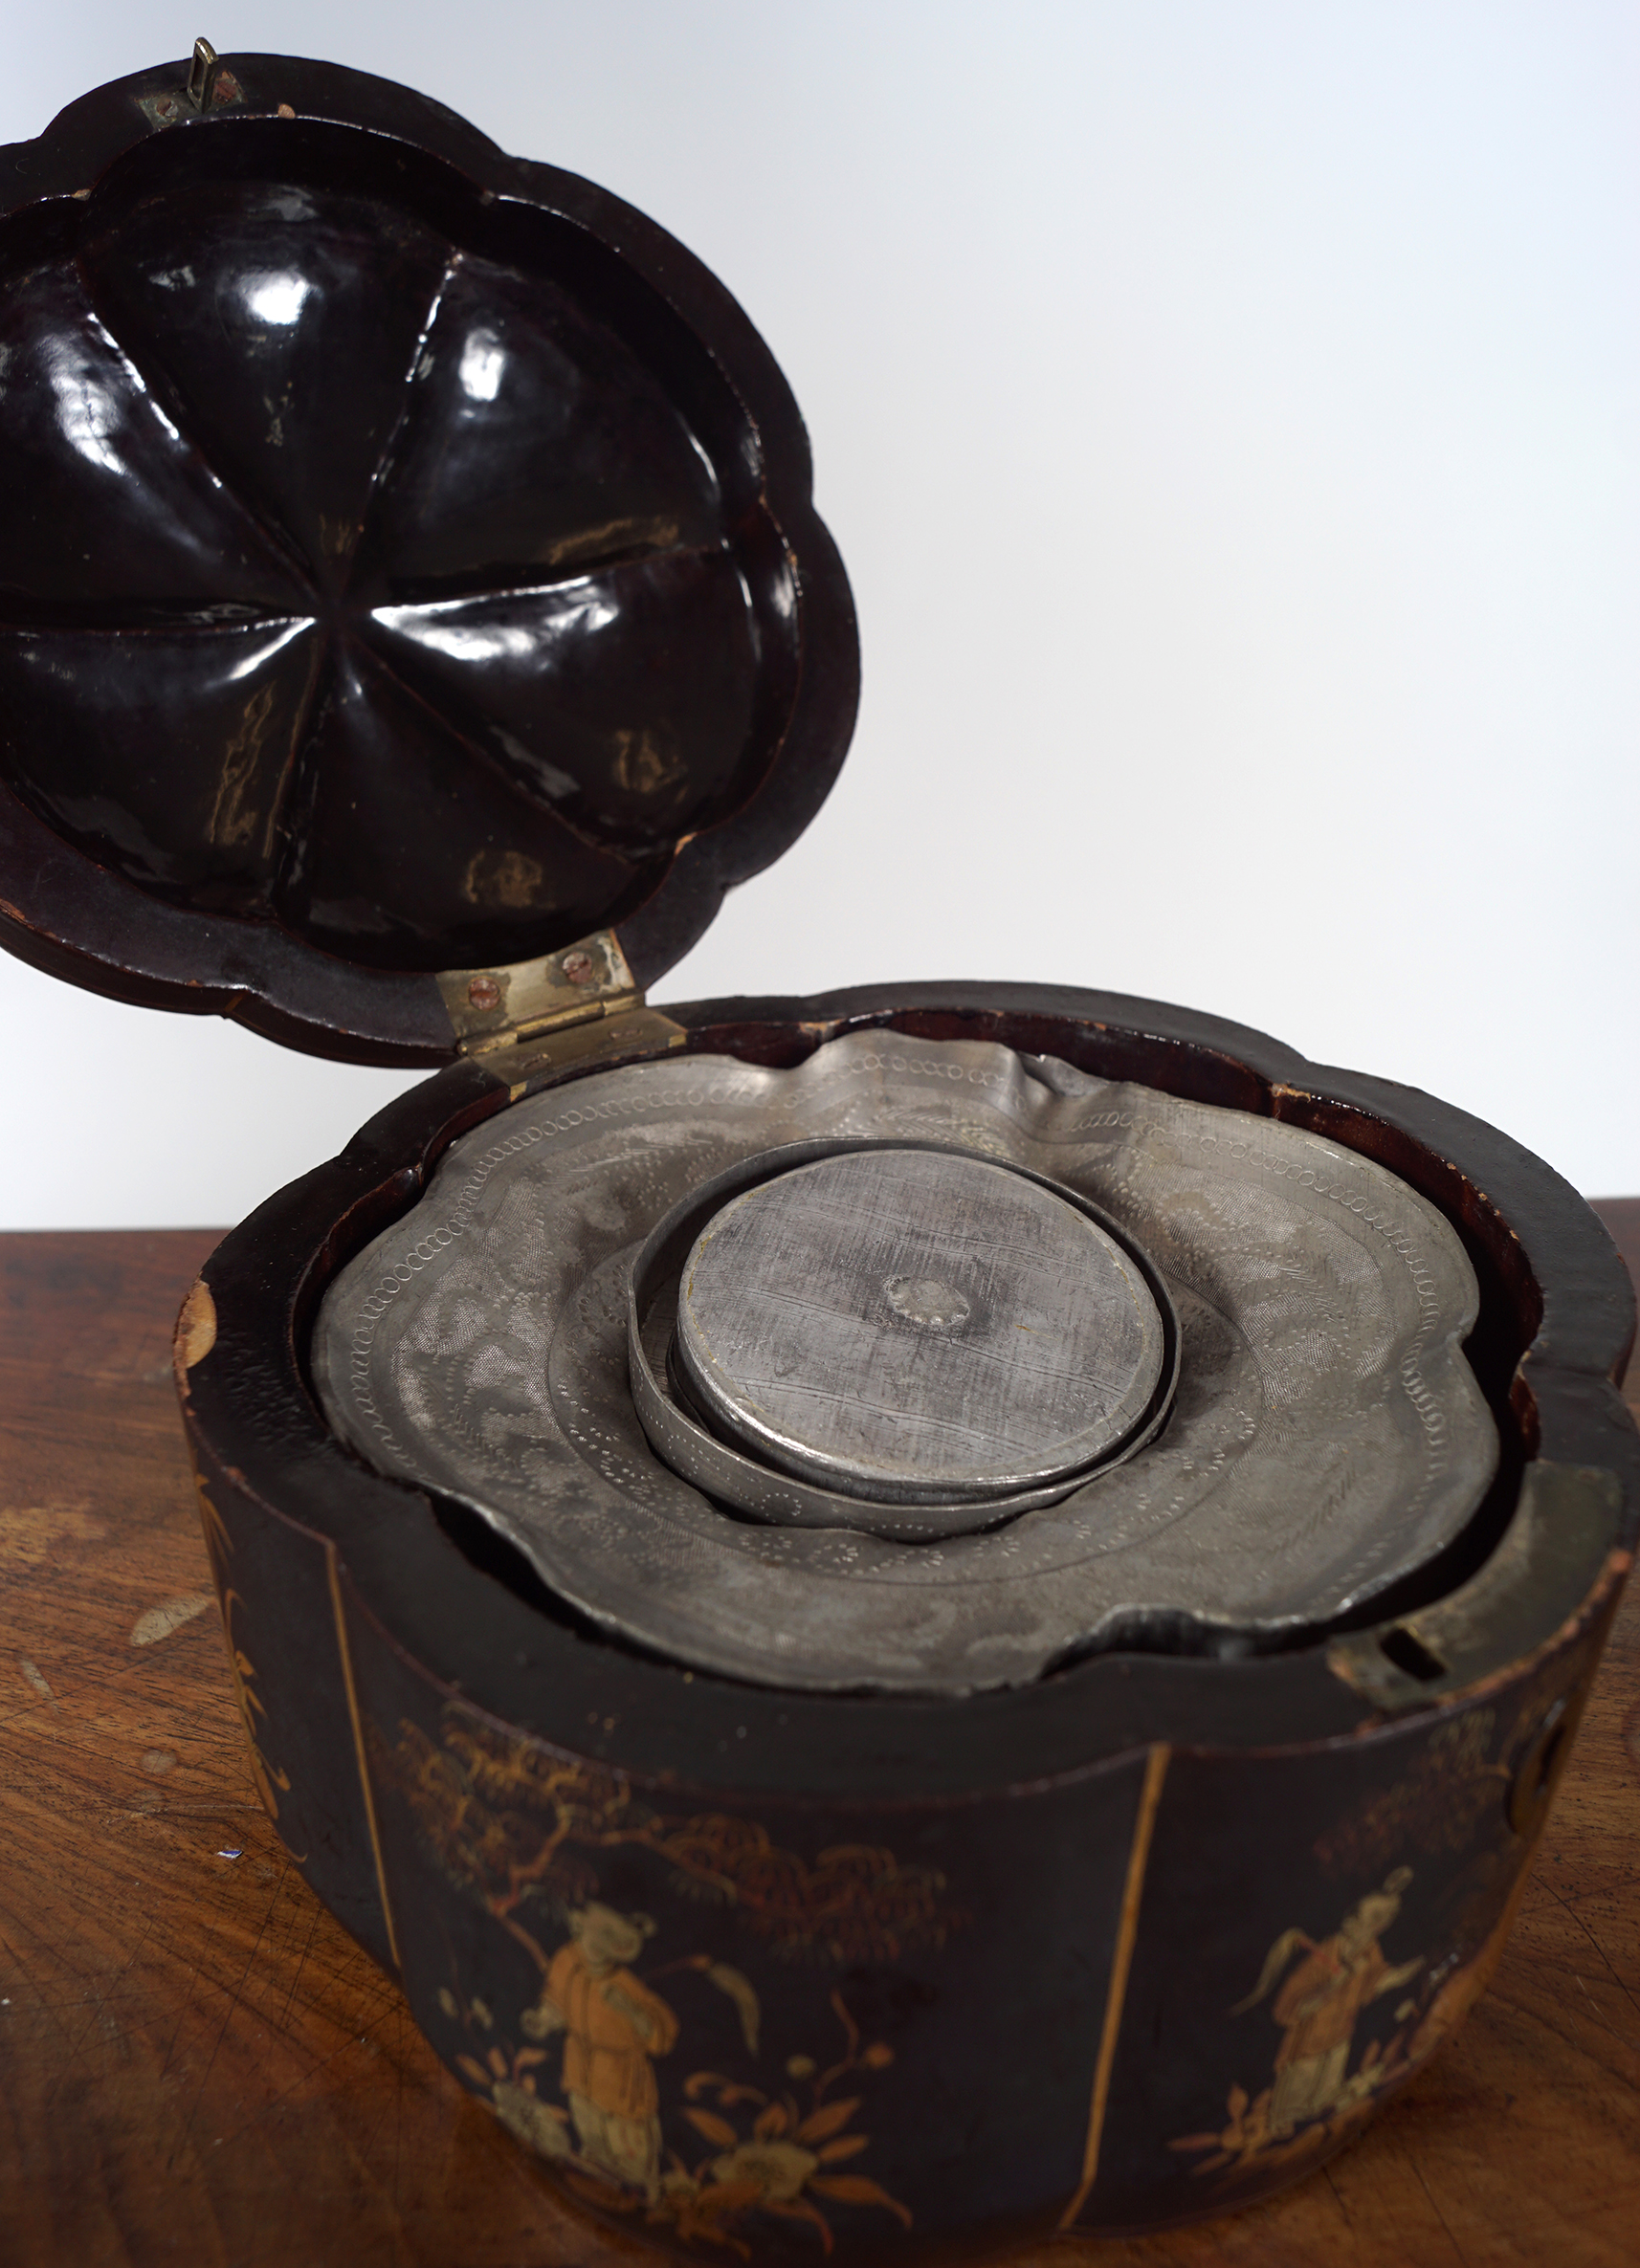 19TH-CENTURY LACQUERED TEA CADDY - Image 2 of 2